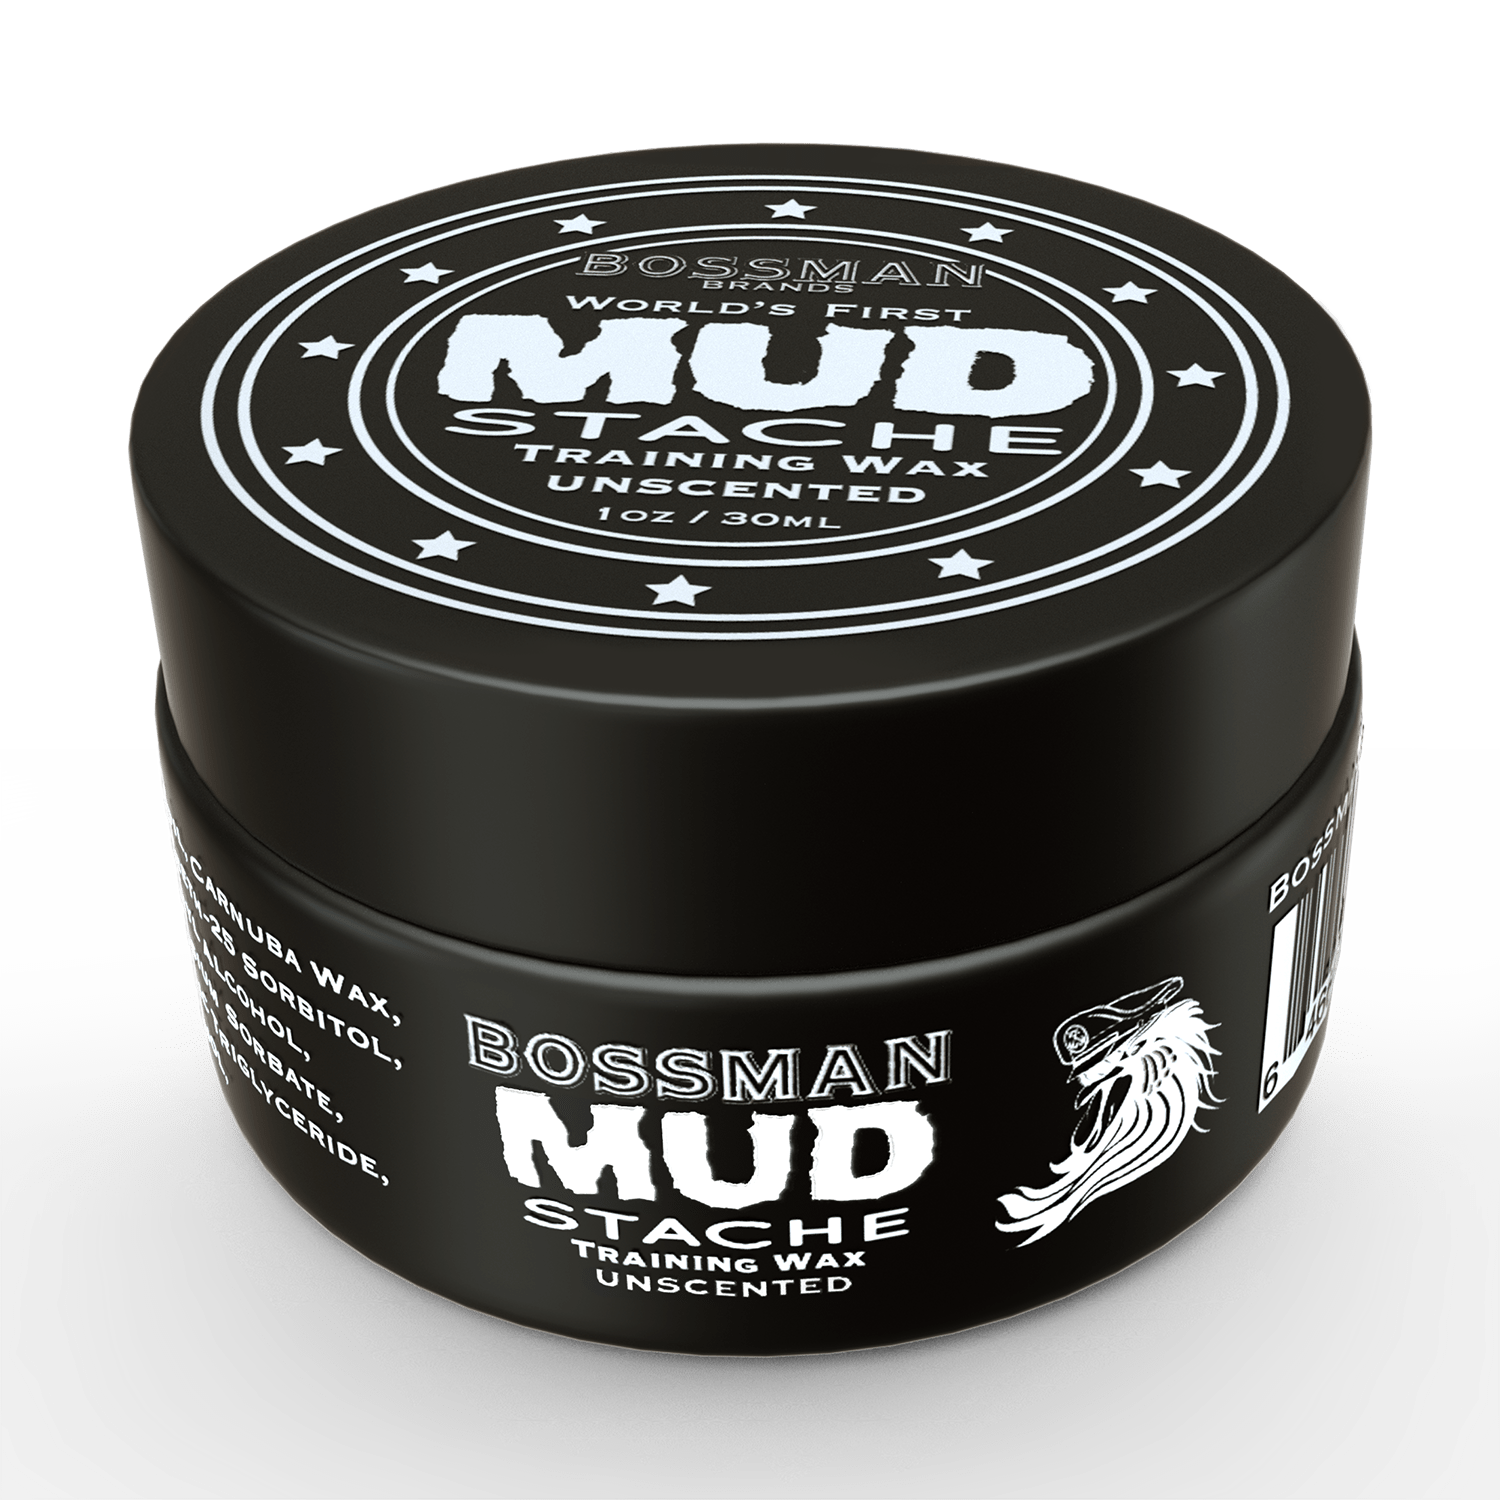 Bossman Unscented Mustache Training Wax